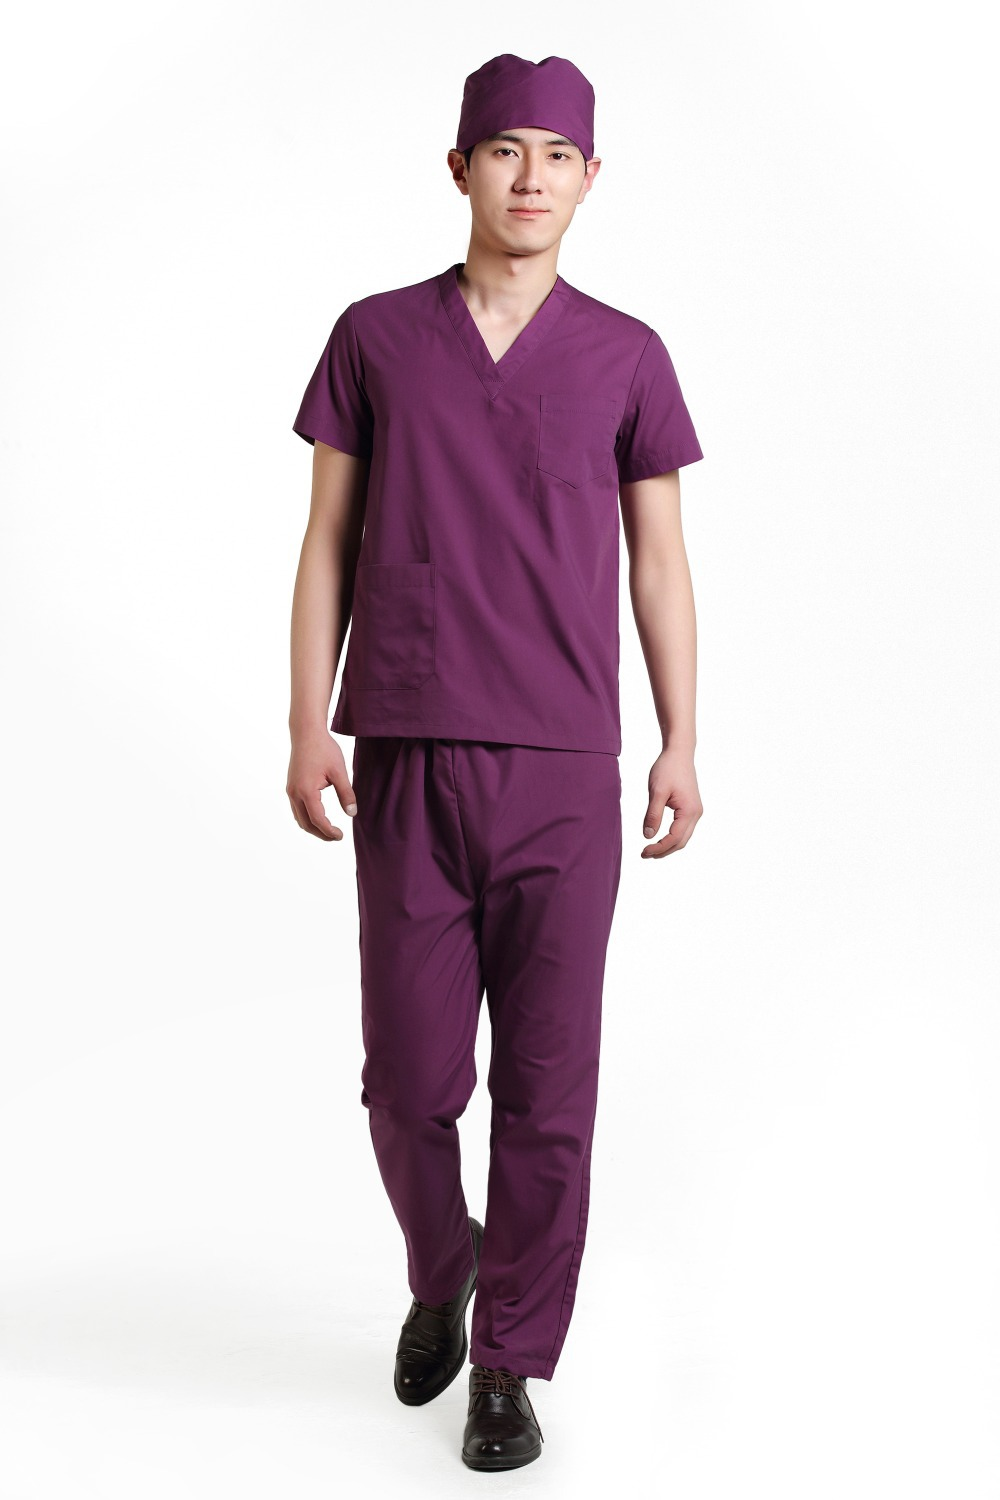 2015 OEM men medical scrub sets uniformes medicos hospital medical scrub set clothes surgical gowns(China (Mainland))